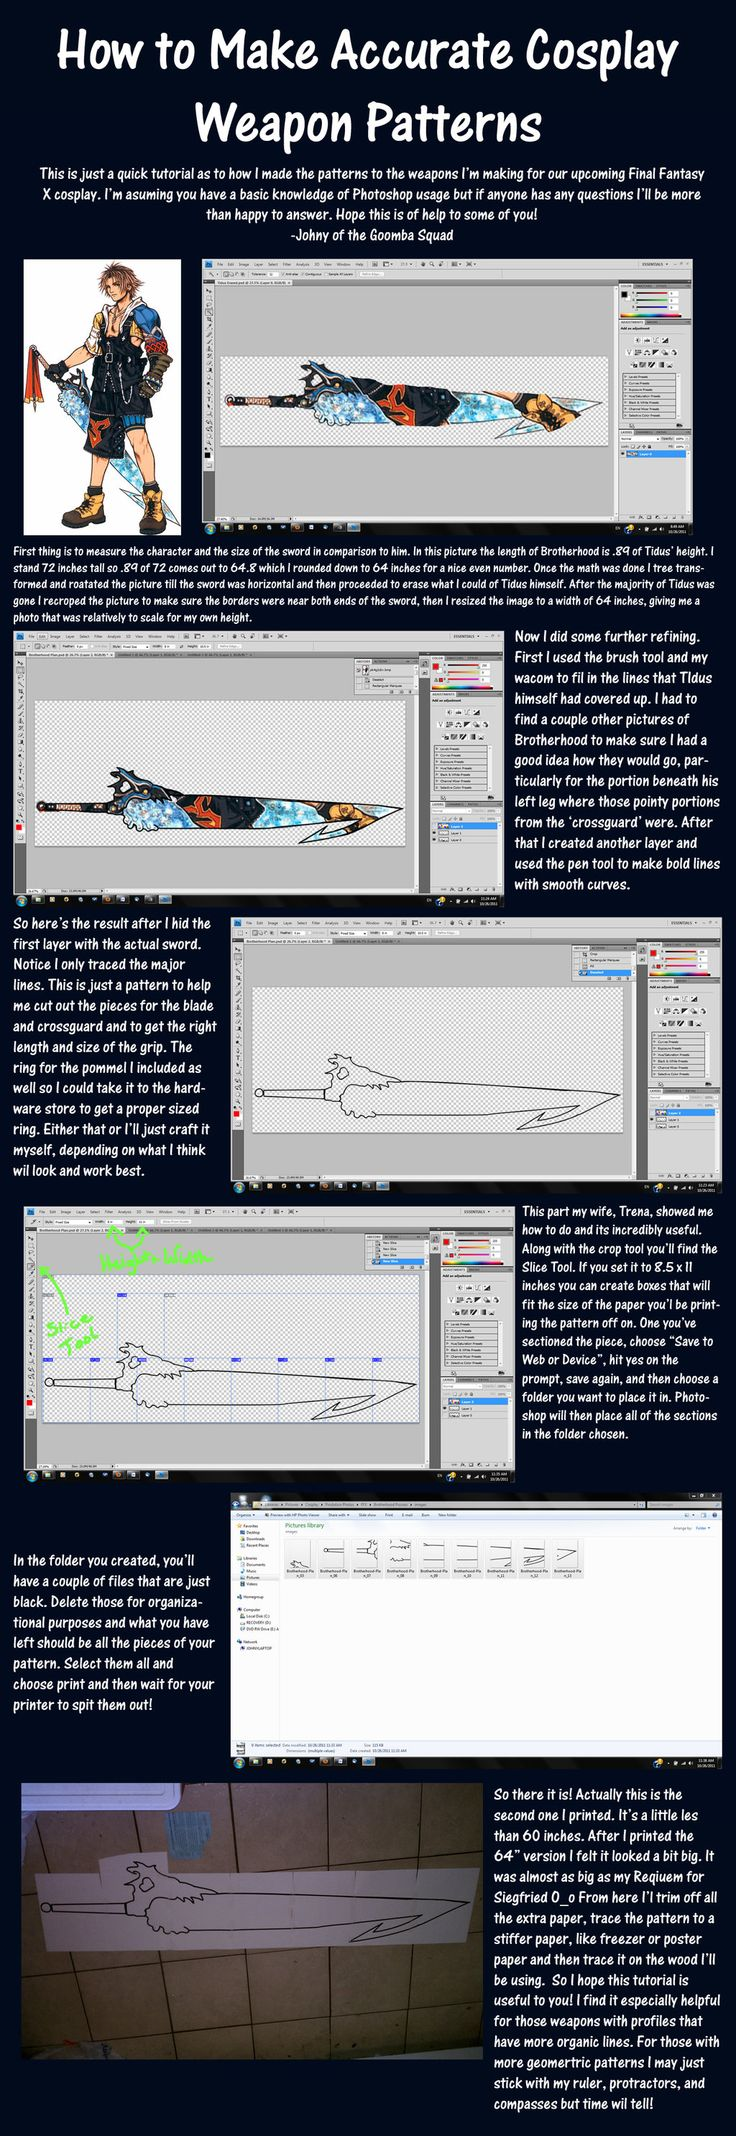 Scale Cosplay Weapon Tutorial by ~Goomba-Squad on deviantART